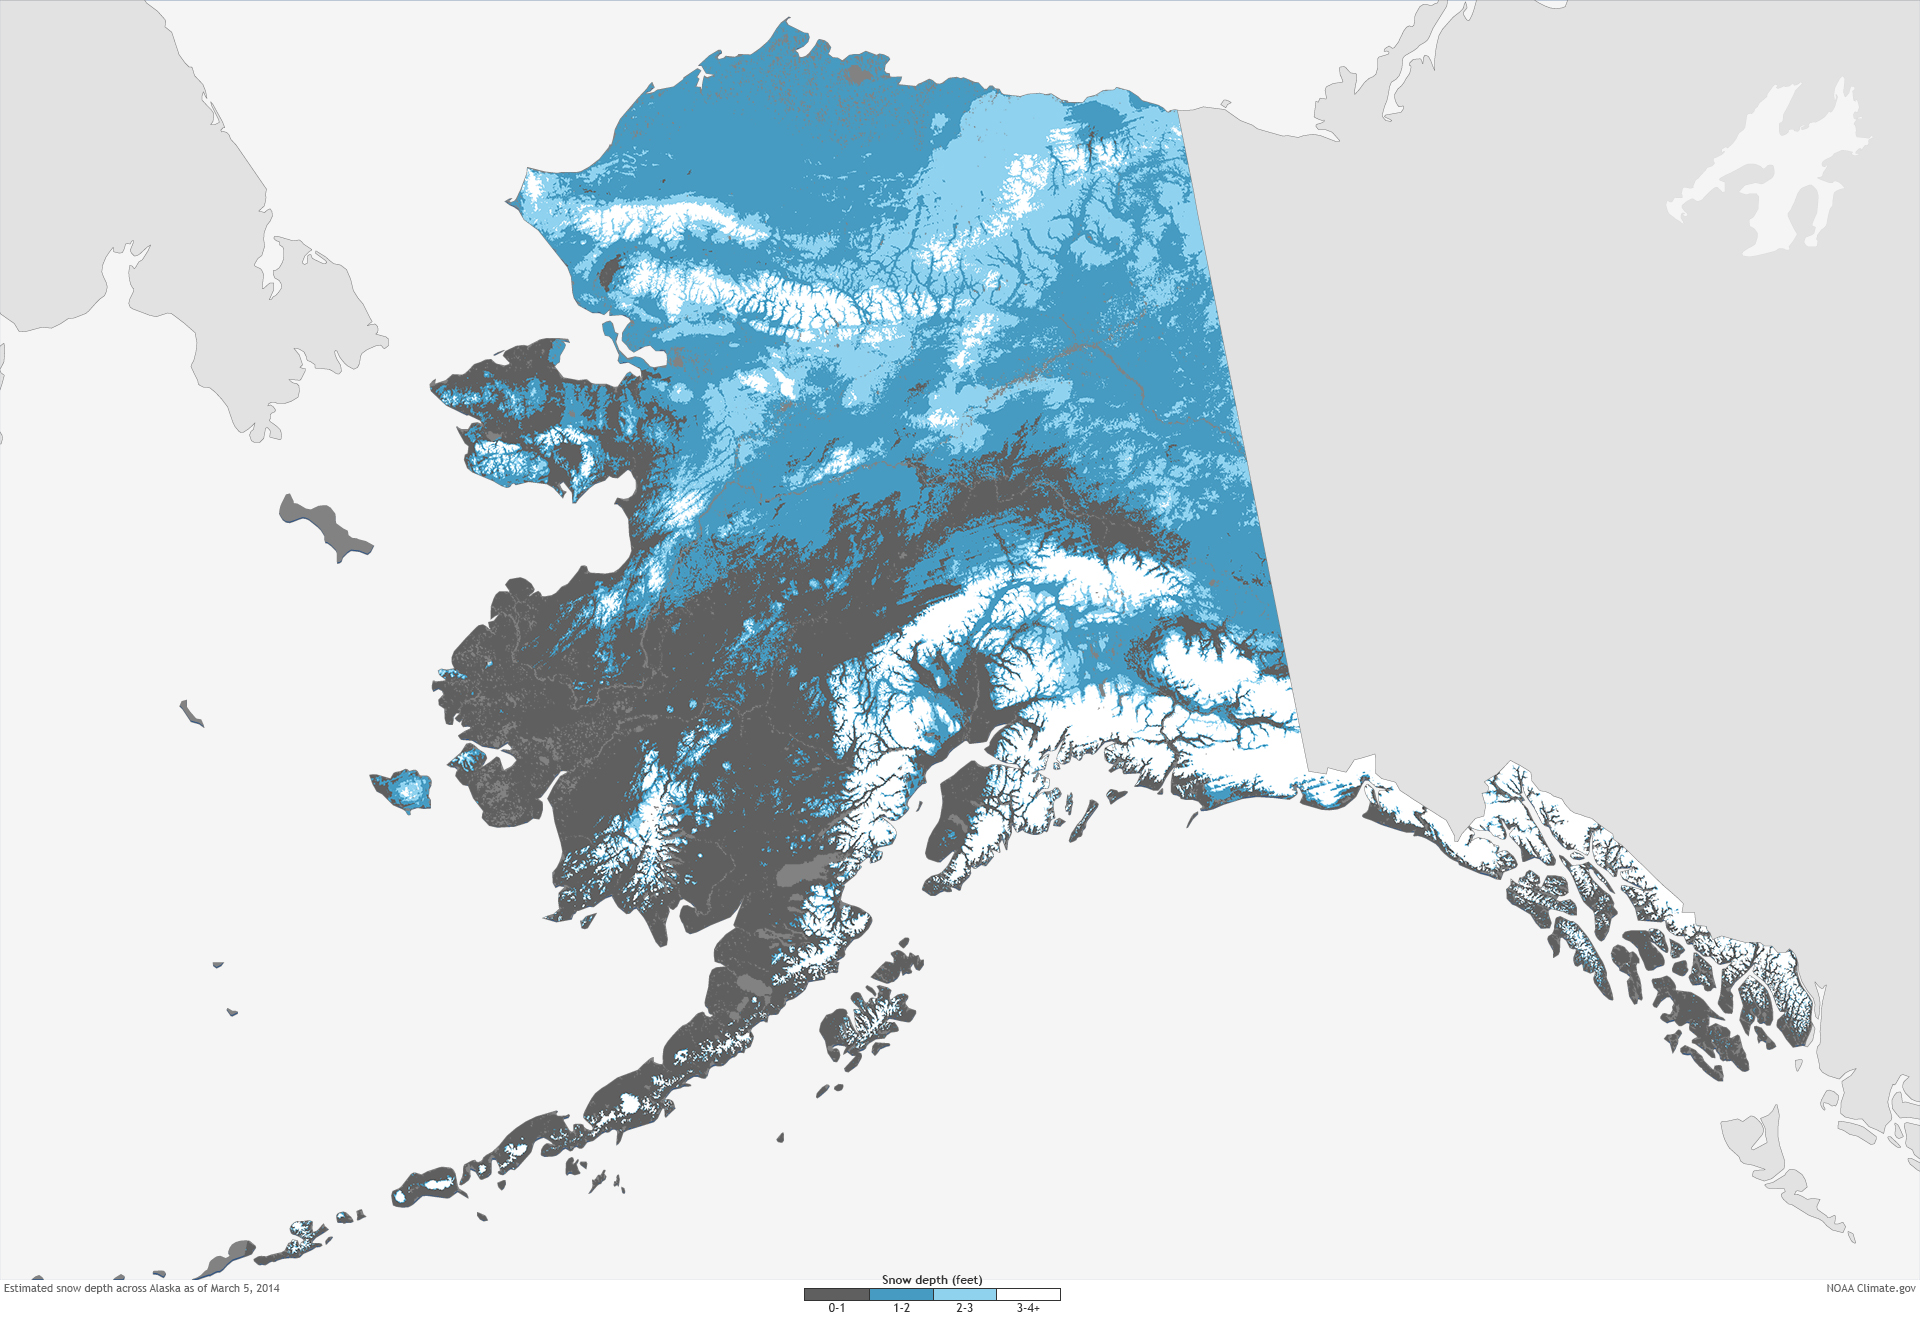 Large Snow Depth Map NOAA Climategov - Us snow cover map noaa